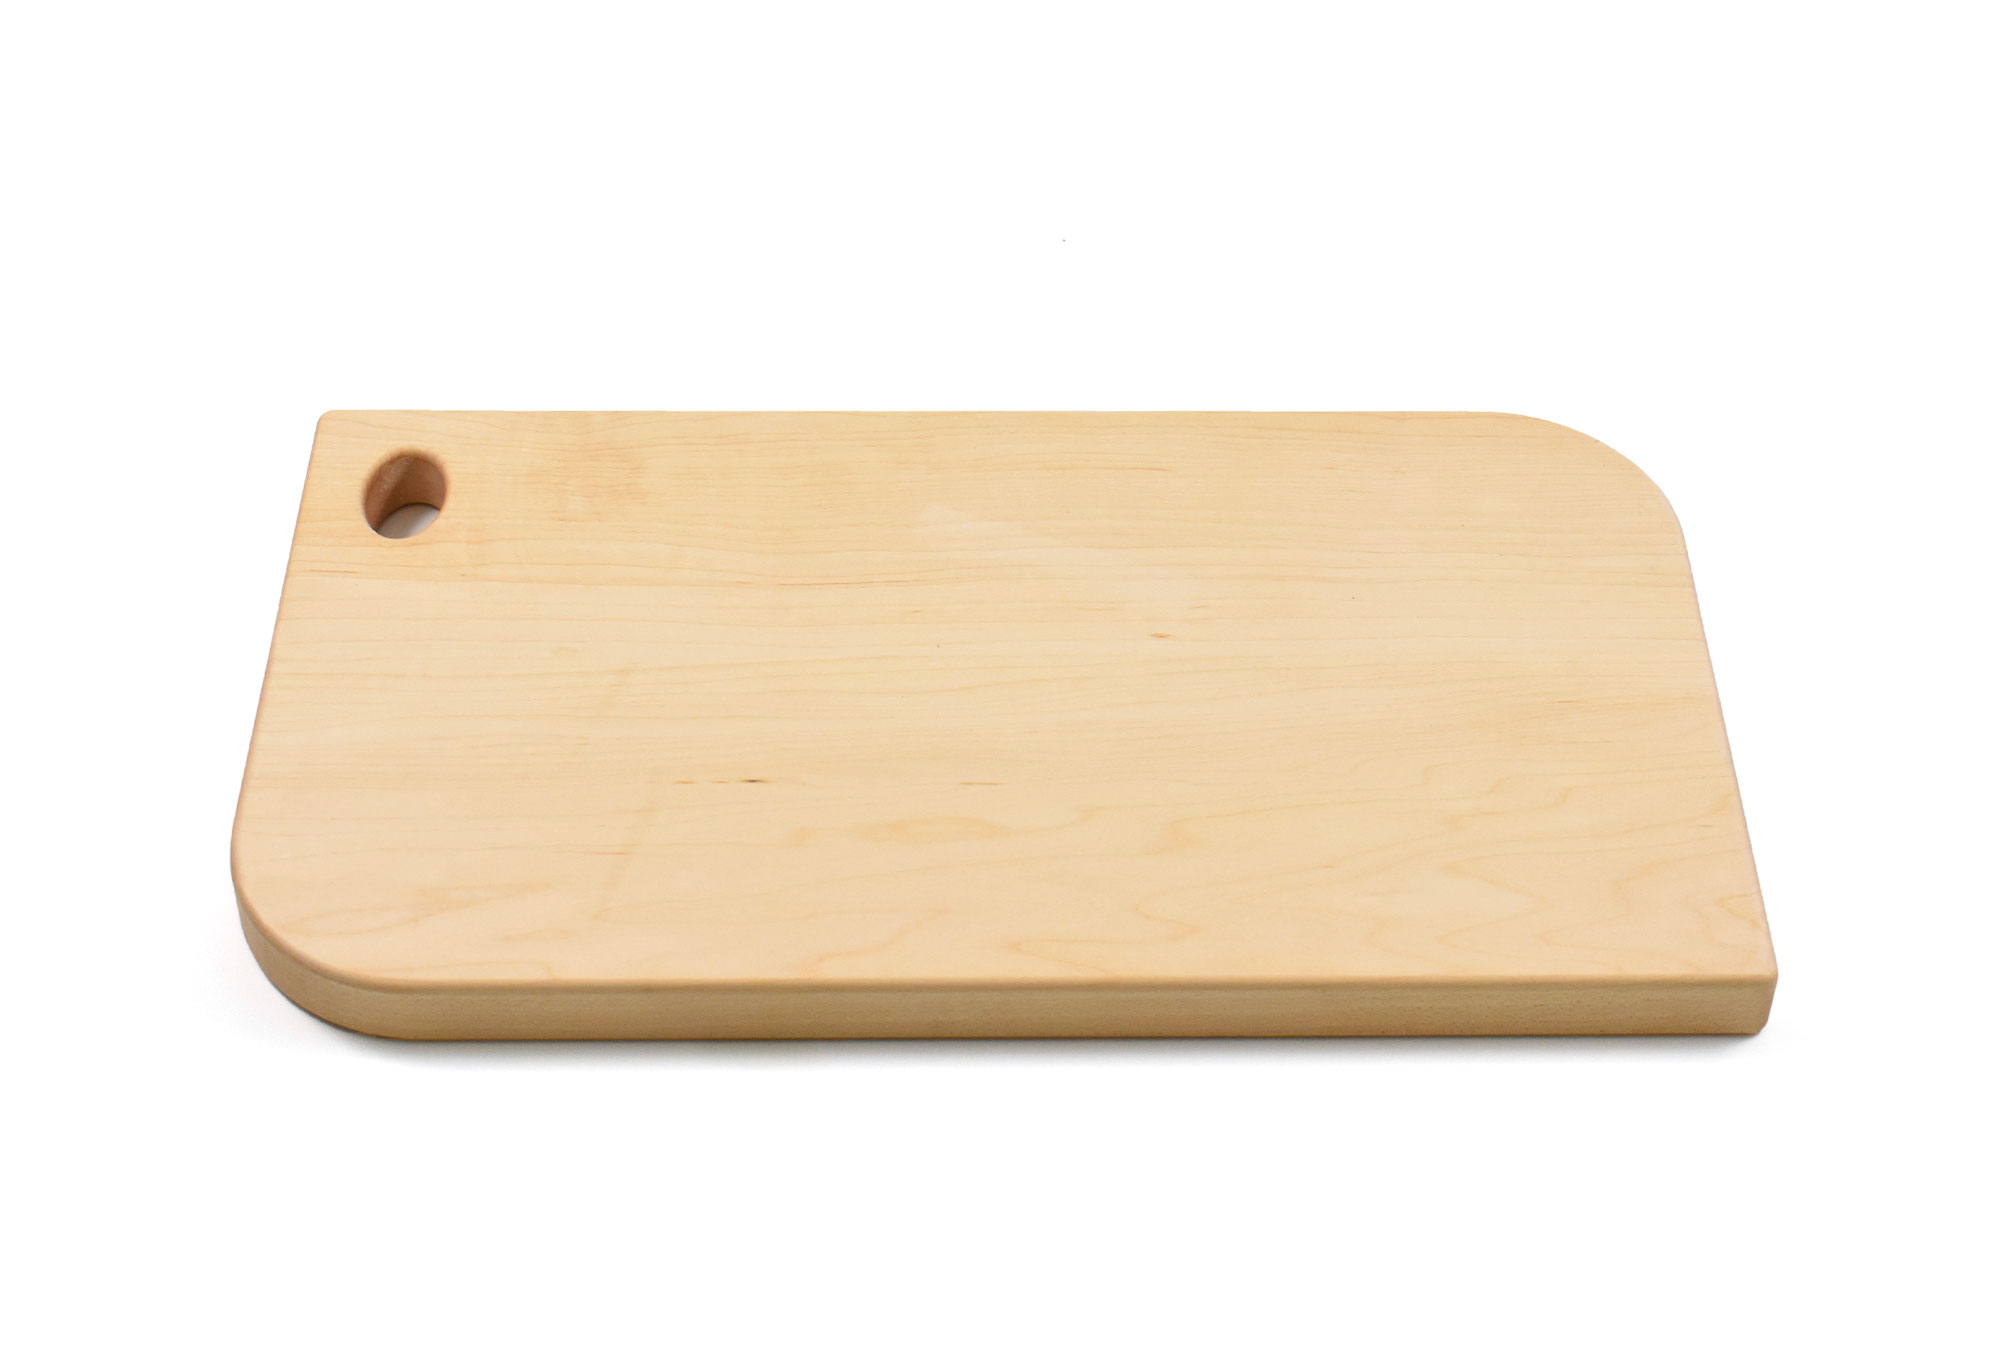 Rectangular charcuterie board